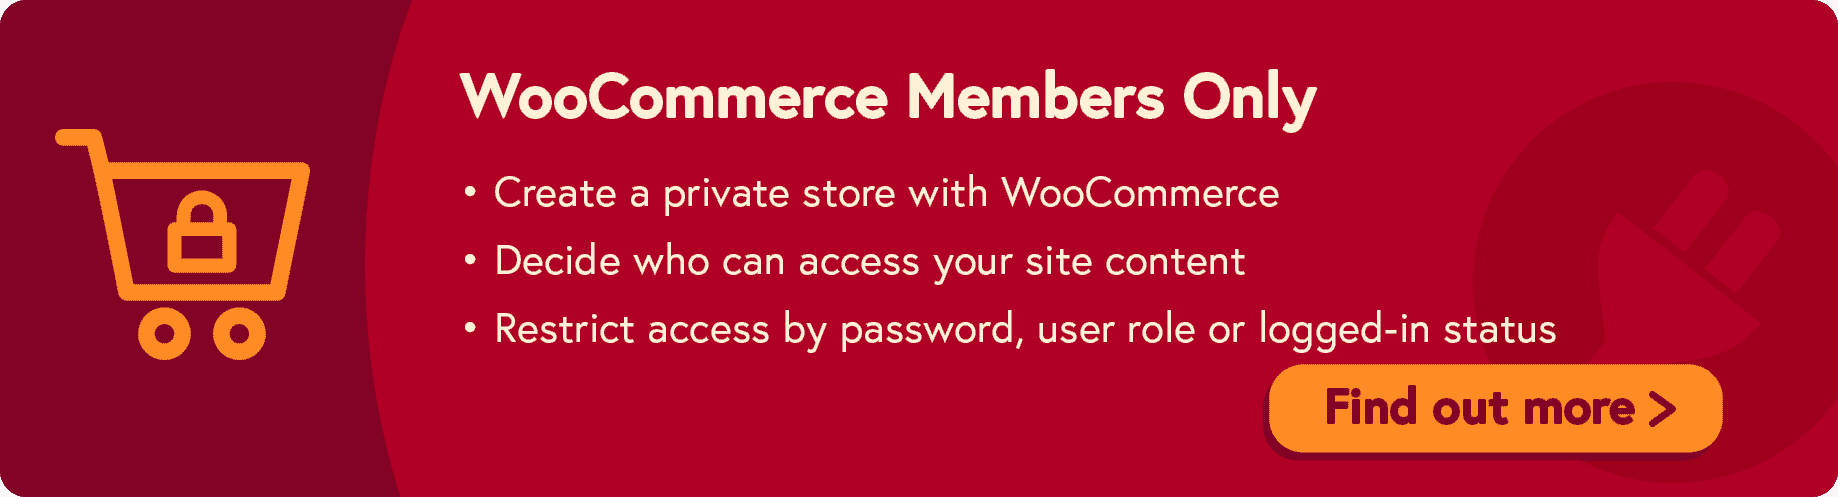 Protect WooCommerce categories